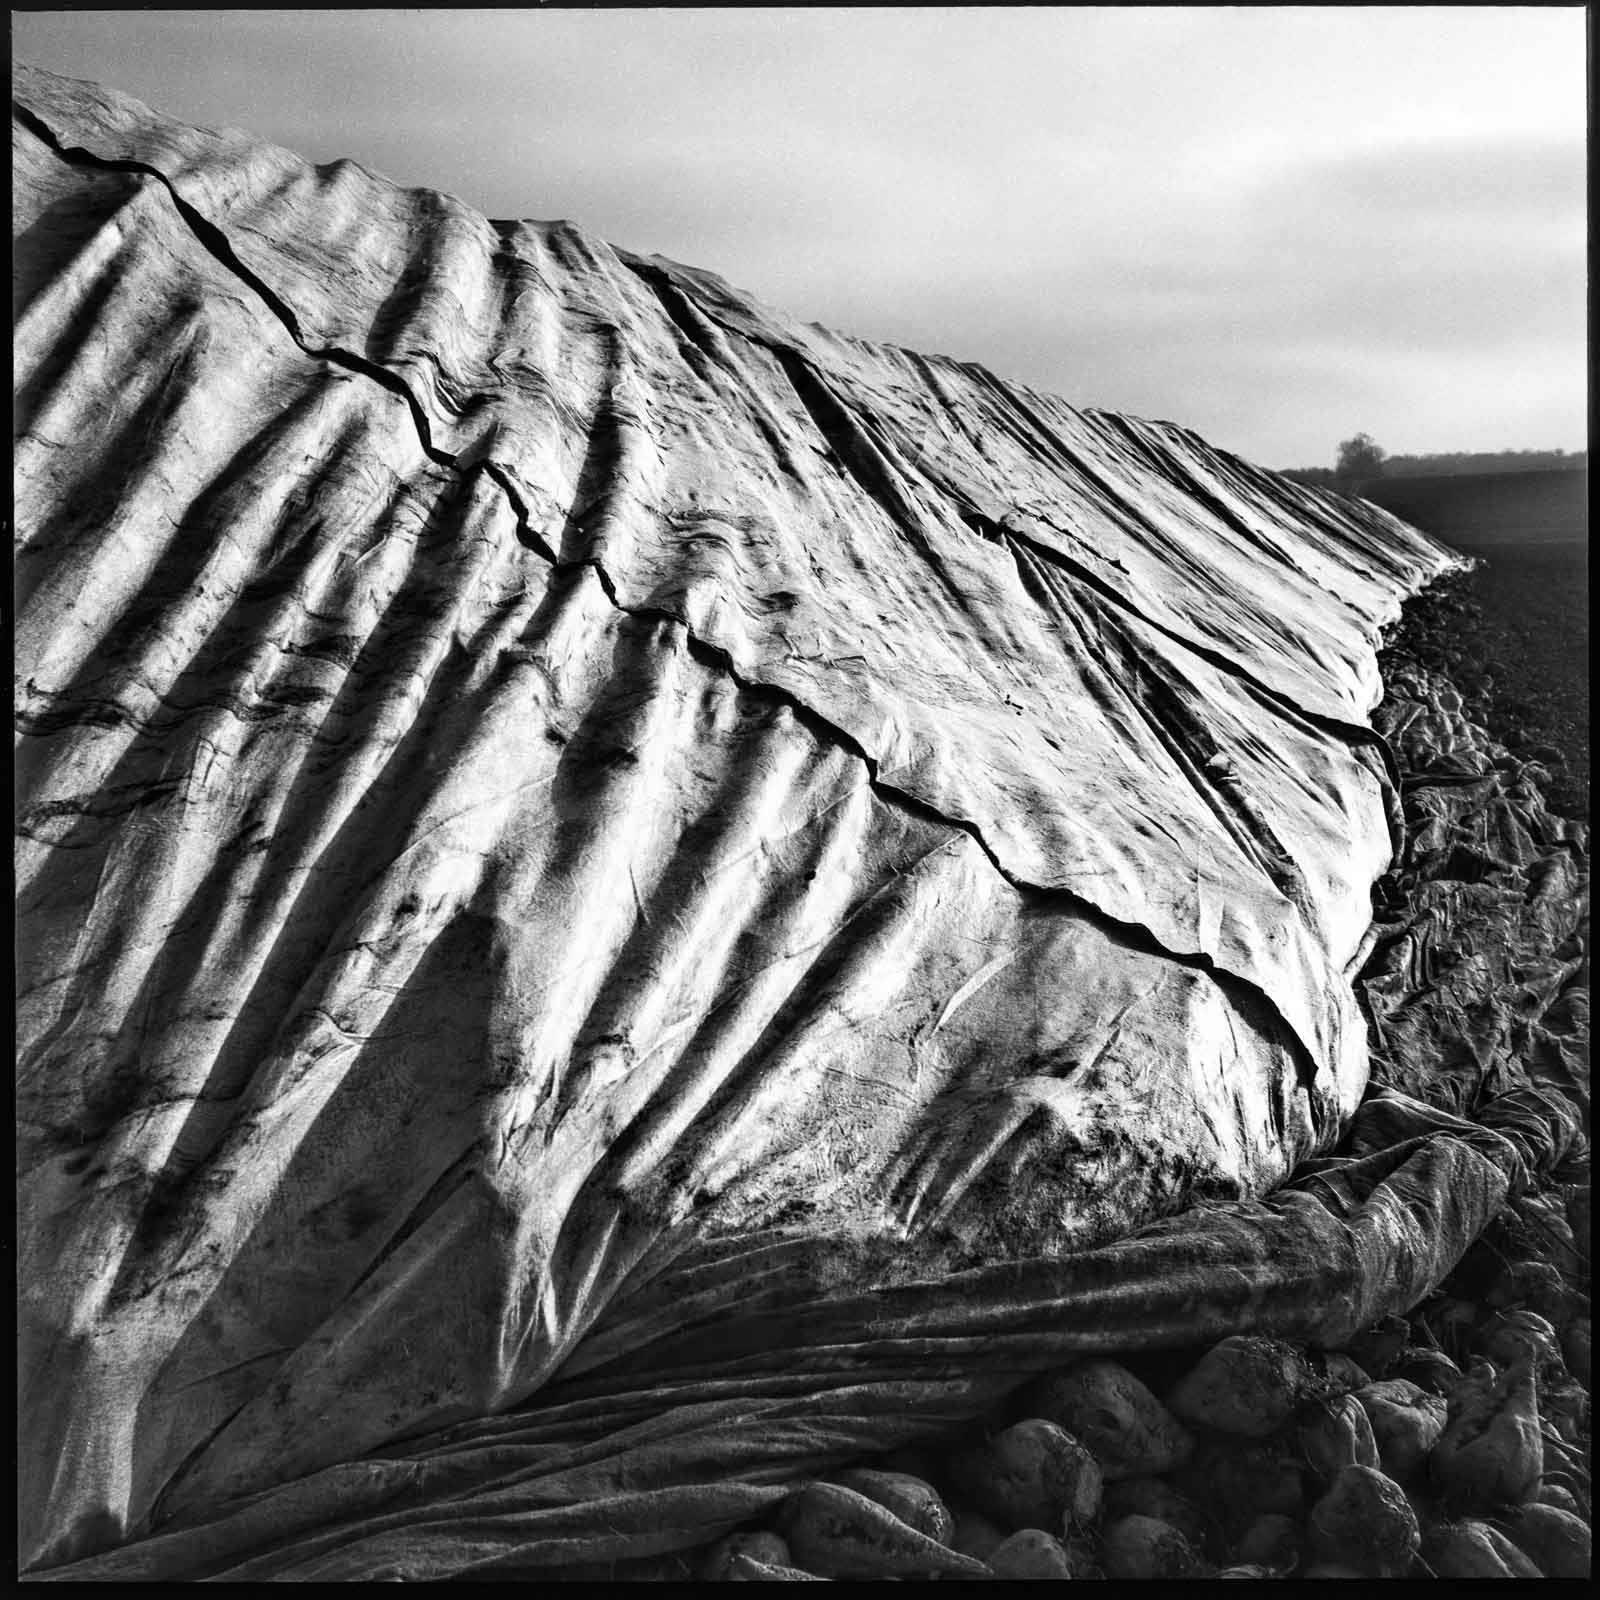 Tarpaulin covers shot on Ilford Pan F, HC110 solution E